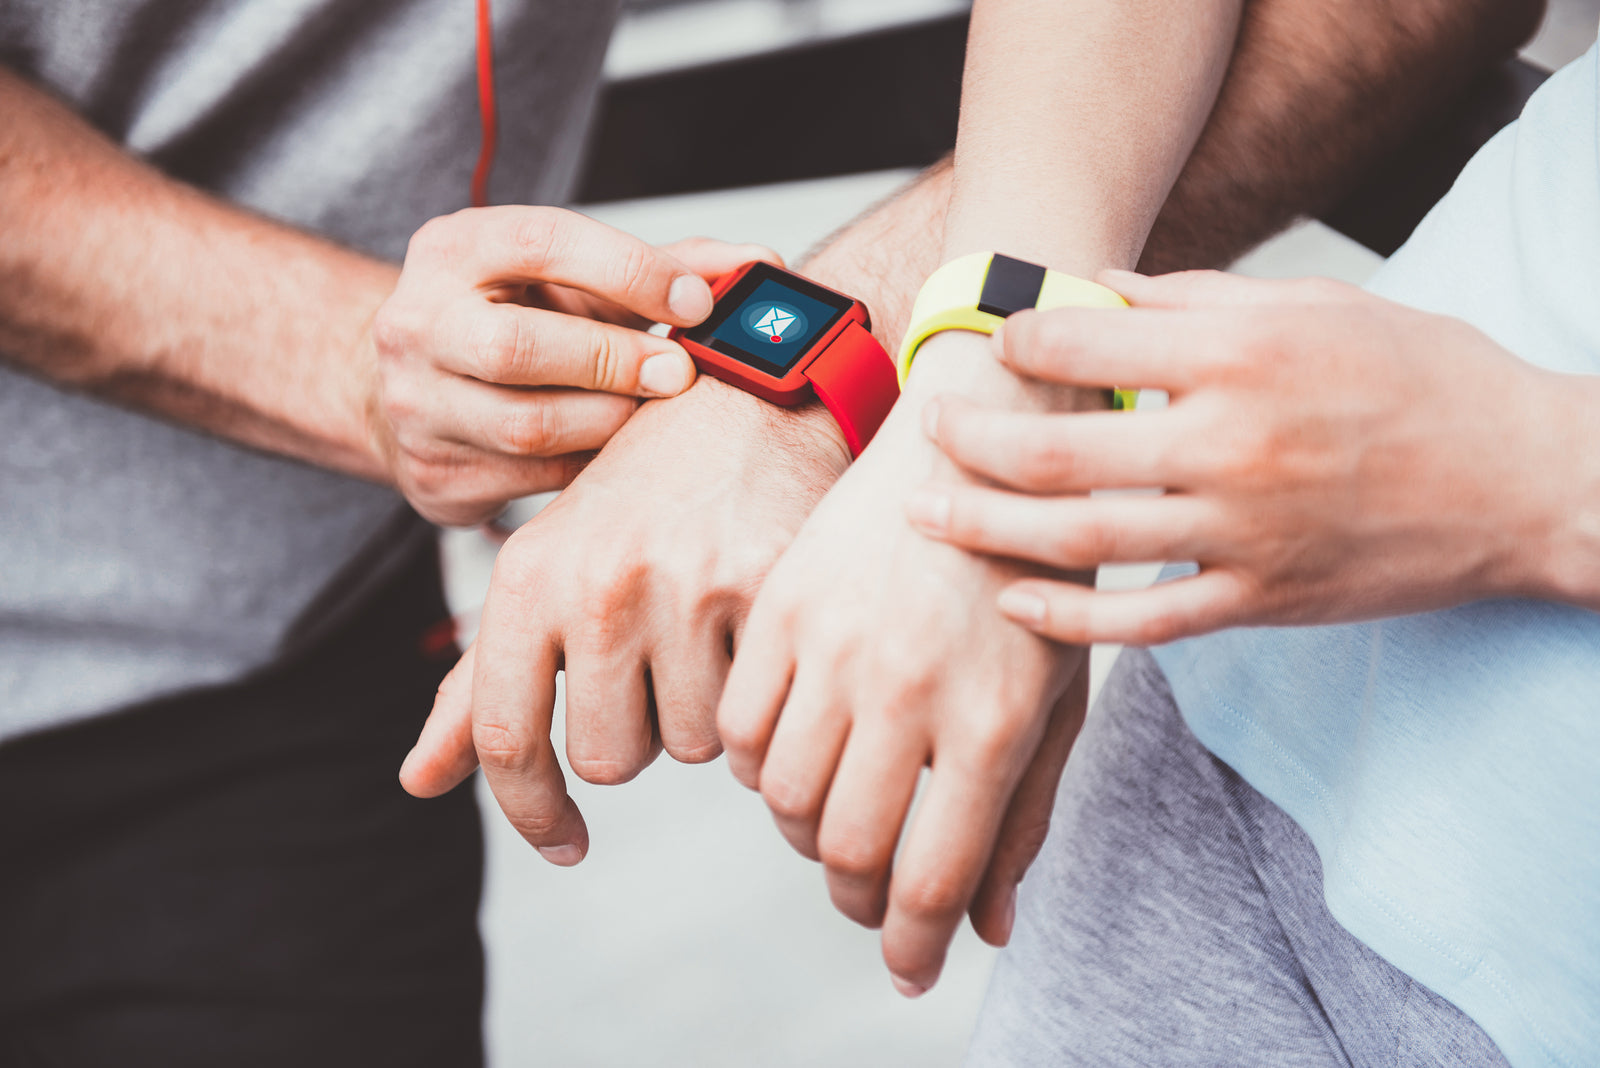 3 Benefits of Using a FitBit